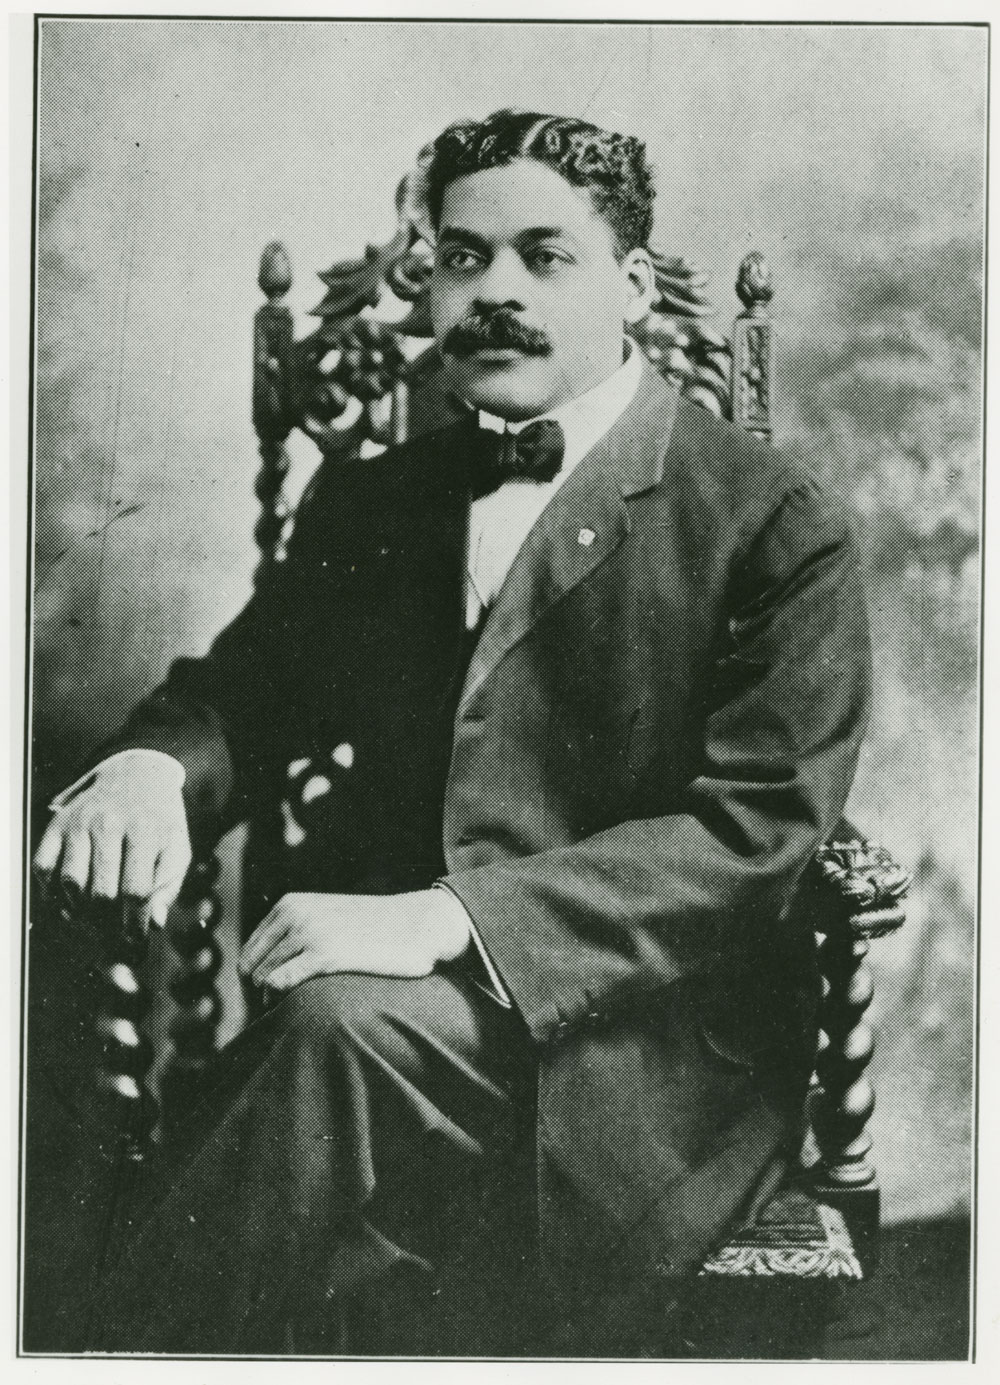 Portrait of Arthur Alfonso Schomburg, bibliophile, ca. 1900s. Reproduction. New York Public Library, Arthur Alfonso Schomburg Photograph Collection, Photographs and Prints Division, Schomburg Center for Research in Black Culture, The New York Public Library, Astor, Lenox and Tilden Foundations.